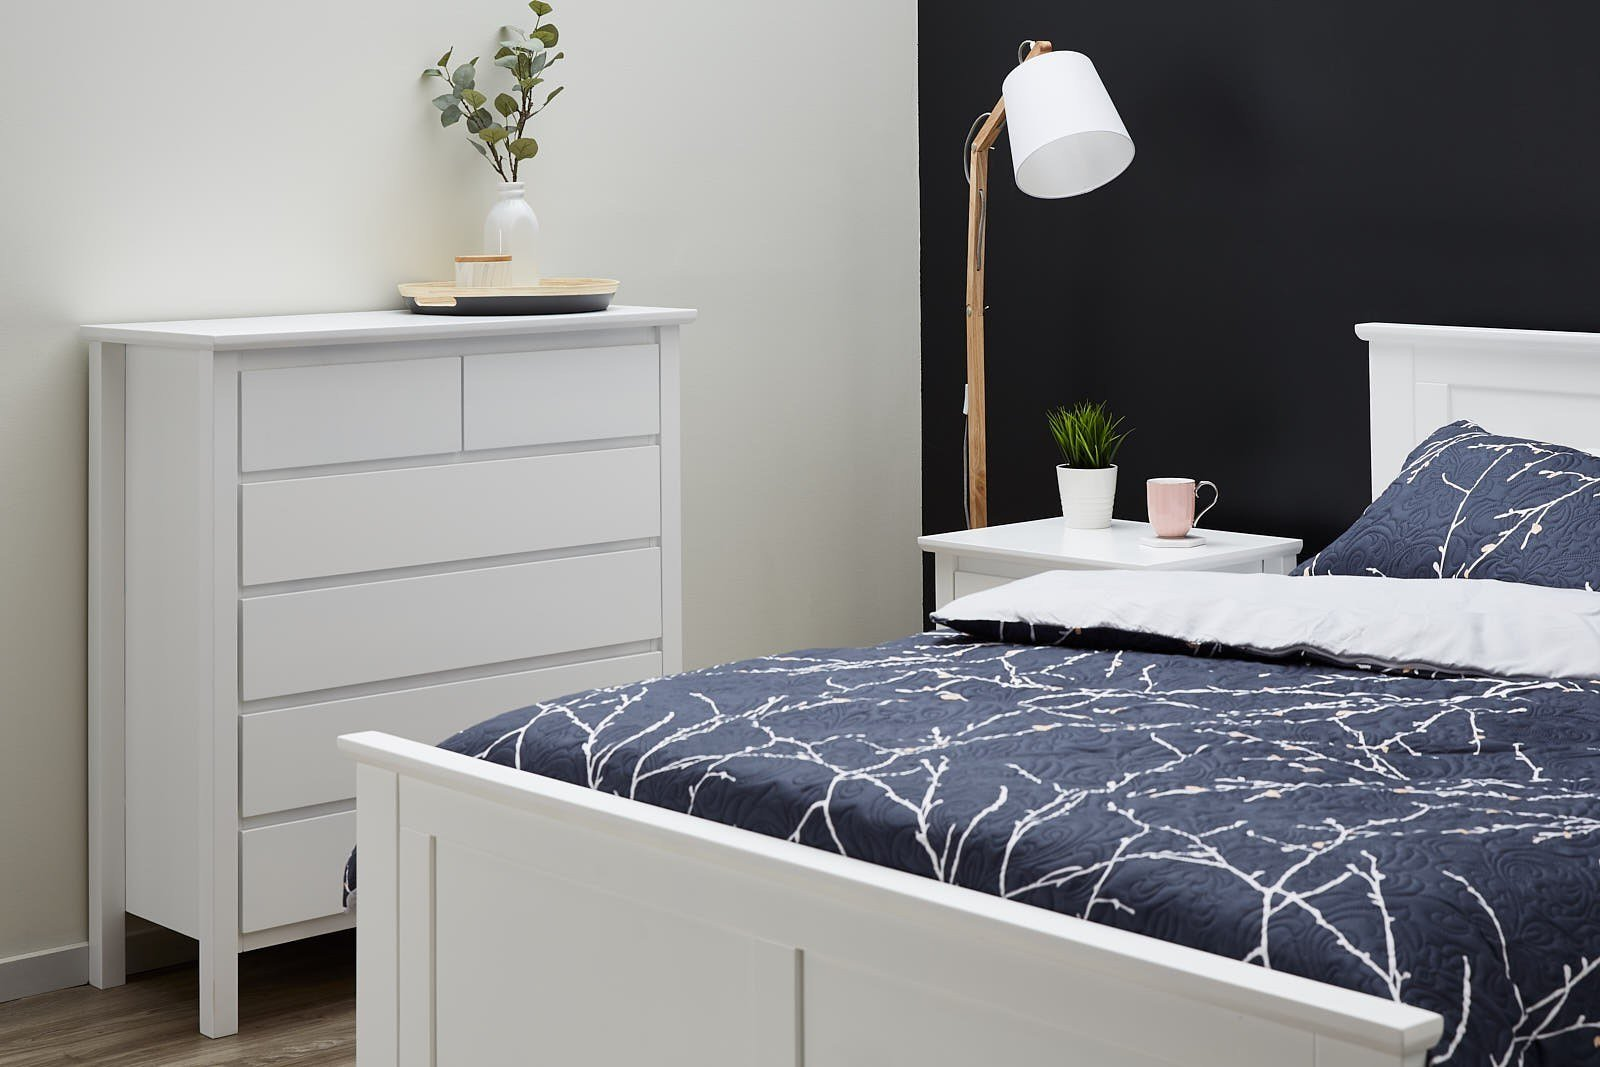 Best White Queen Size Bedroom Suites 50 75 Off Sale Hardwood Frames B2C Furniture With Pictures